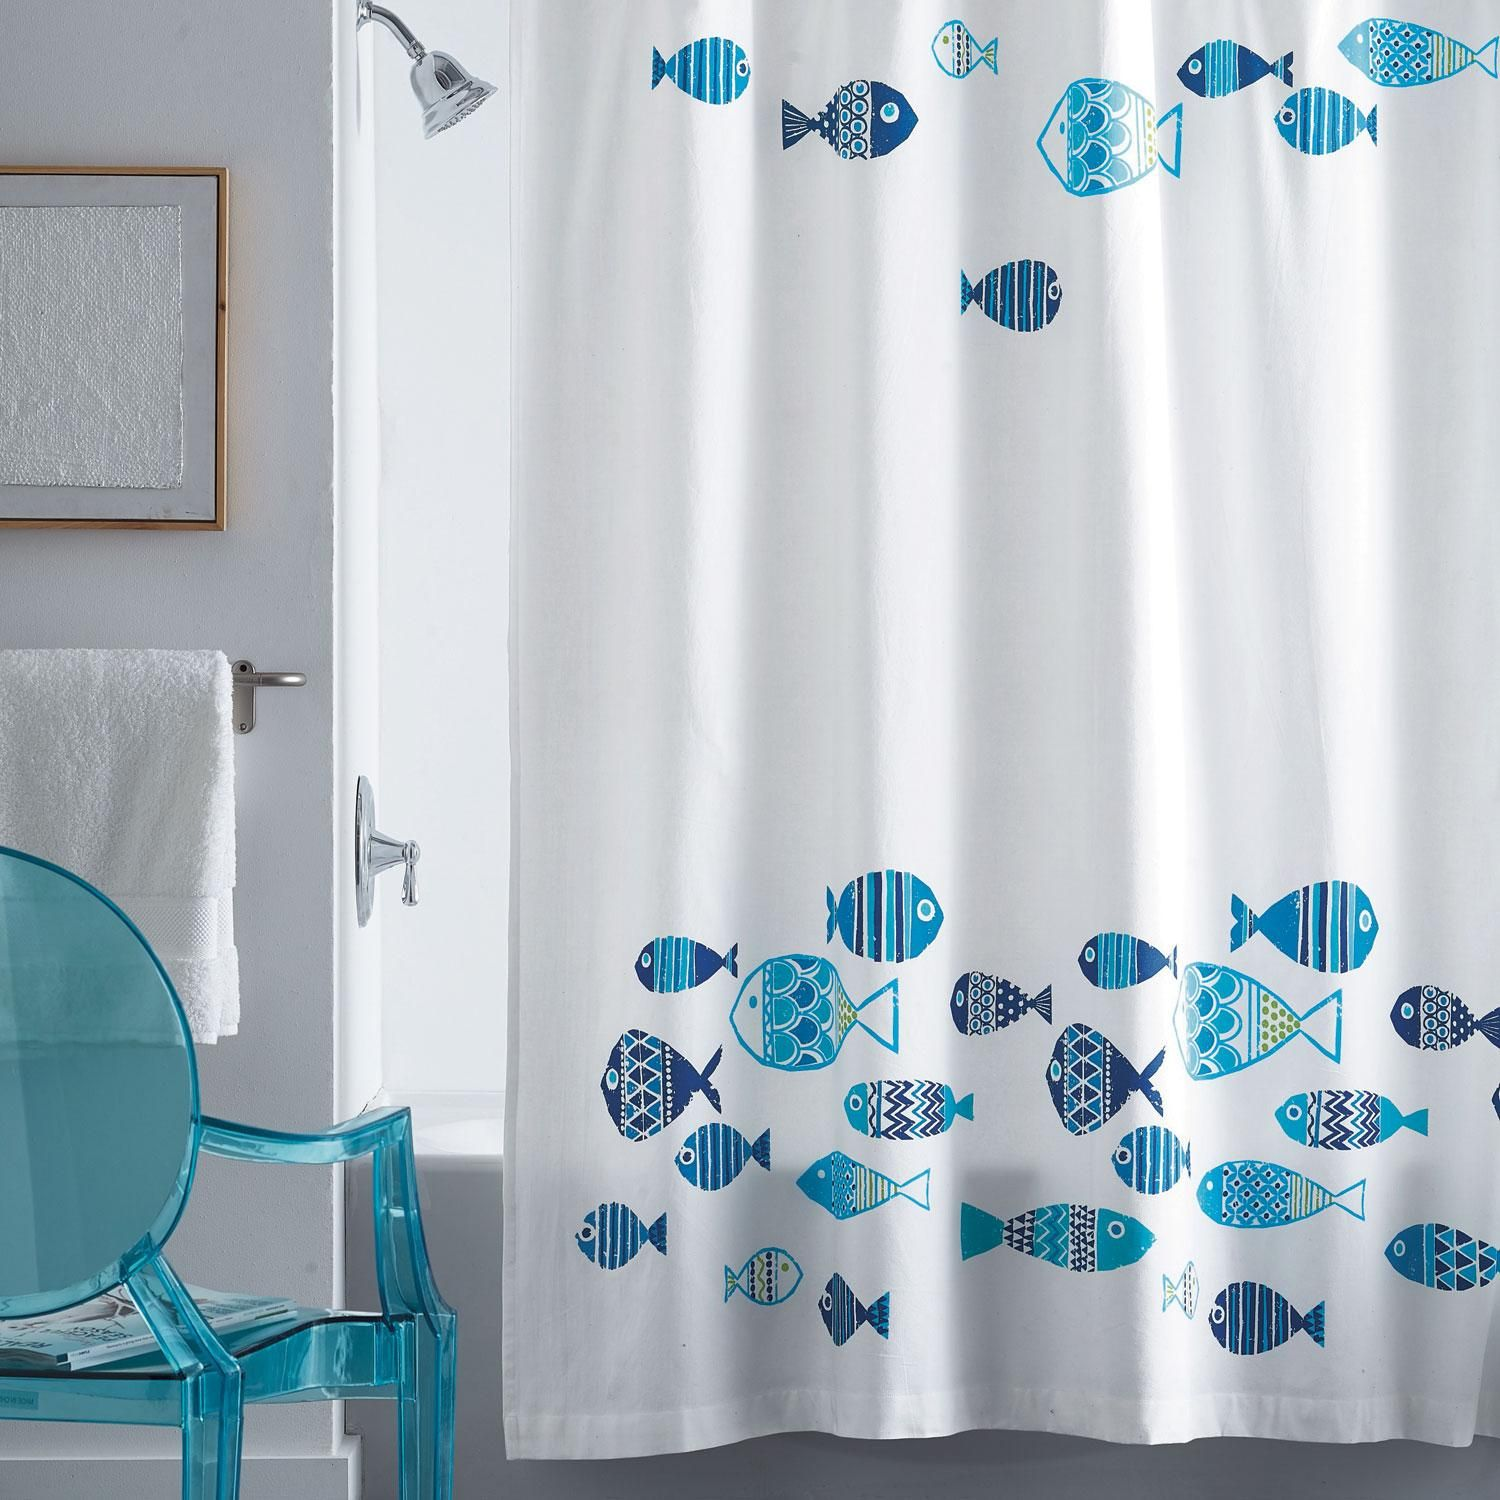 Fish Shower Curtain The Company Store Cool Shower Curtains Curtains Bedding Shop